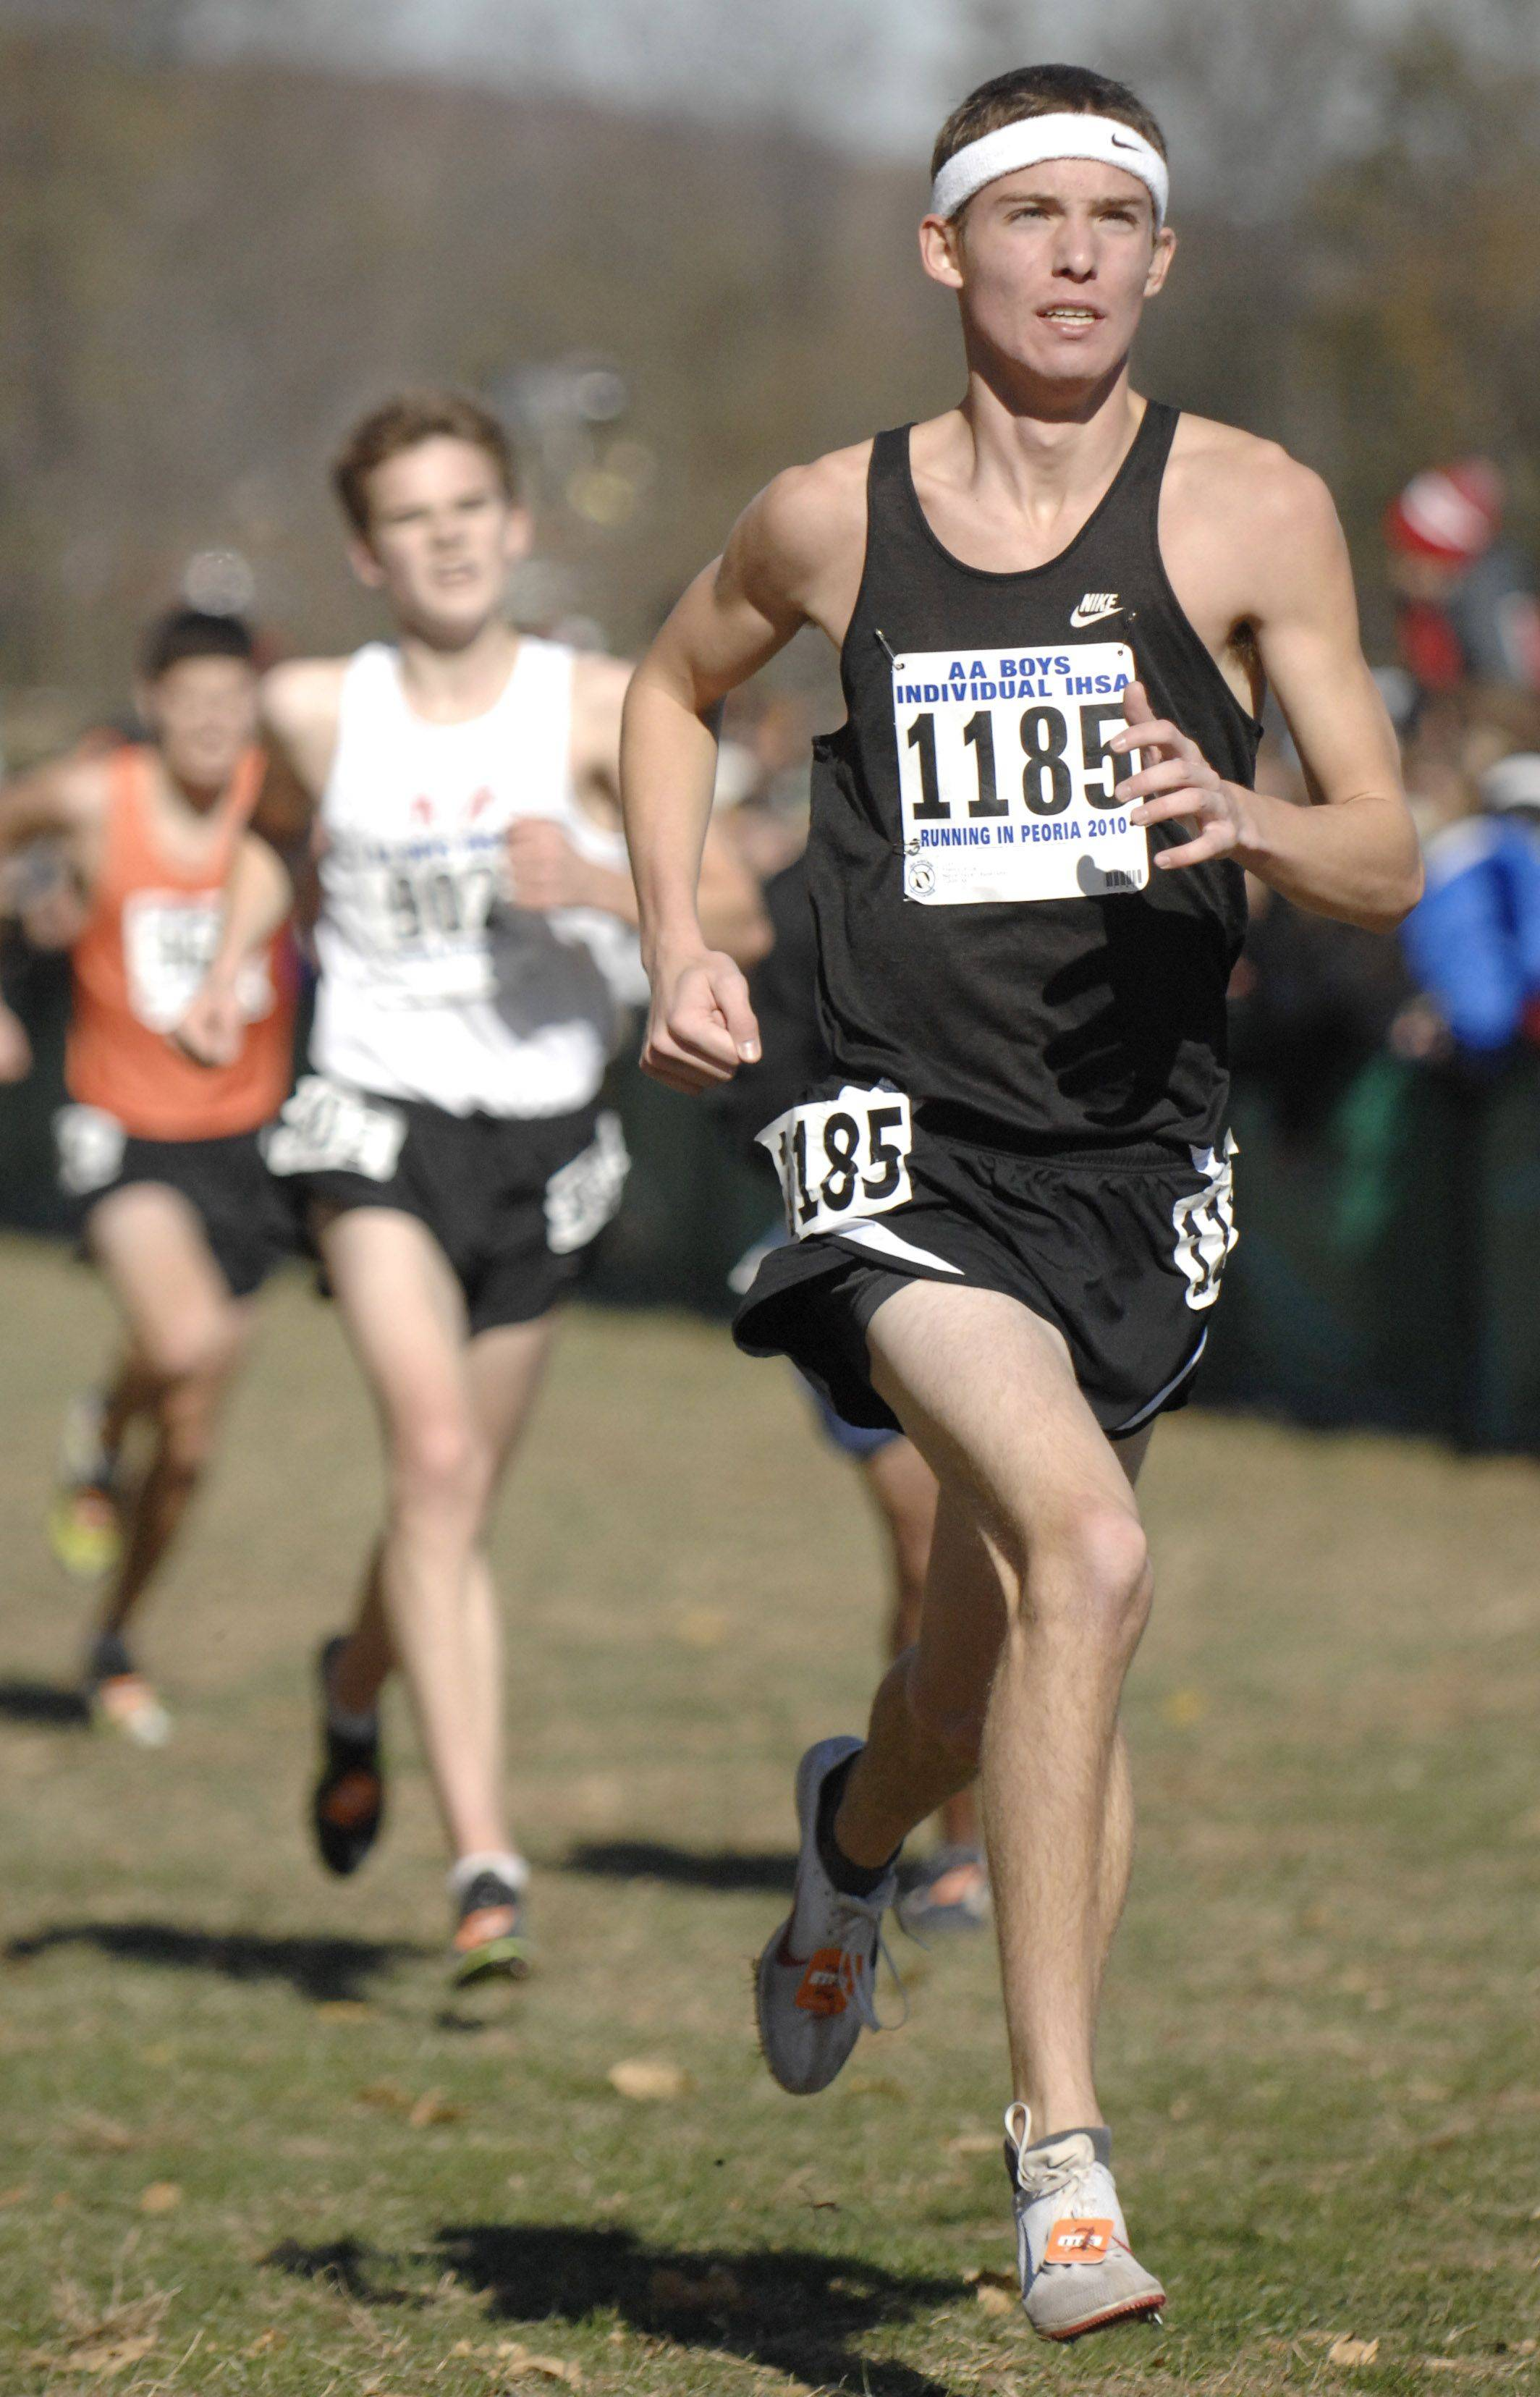 Kaneland's Trevor Holm nears the finish line in the 2A class of the state cross country meet at Detweiller Park in Peoria on Saturday, November 6.